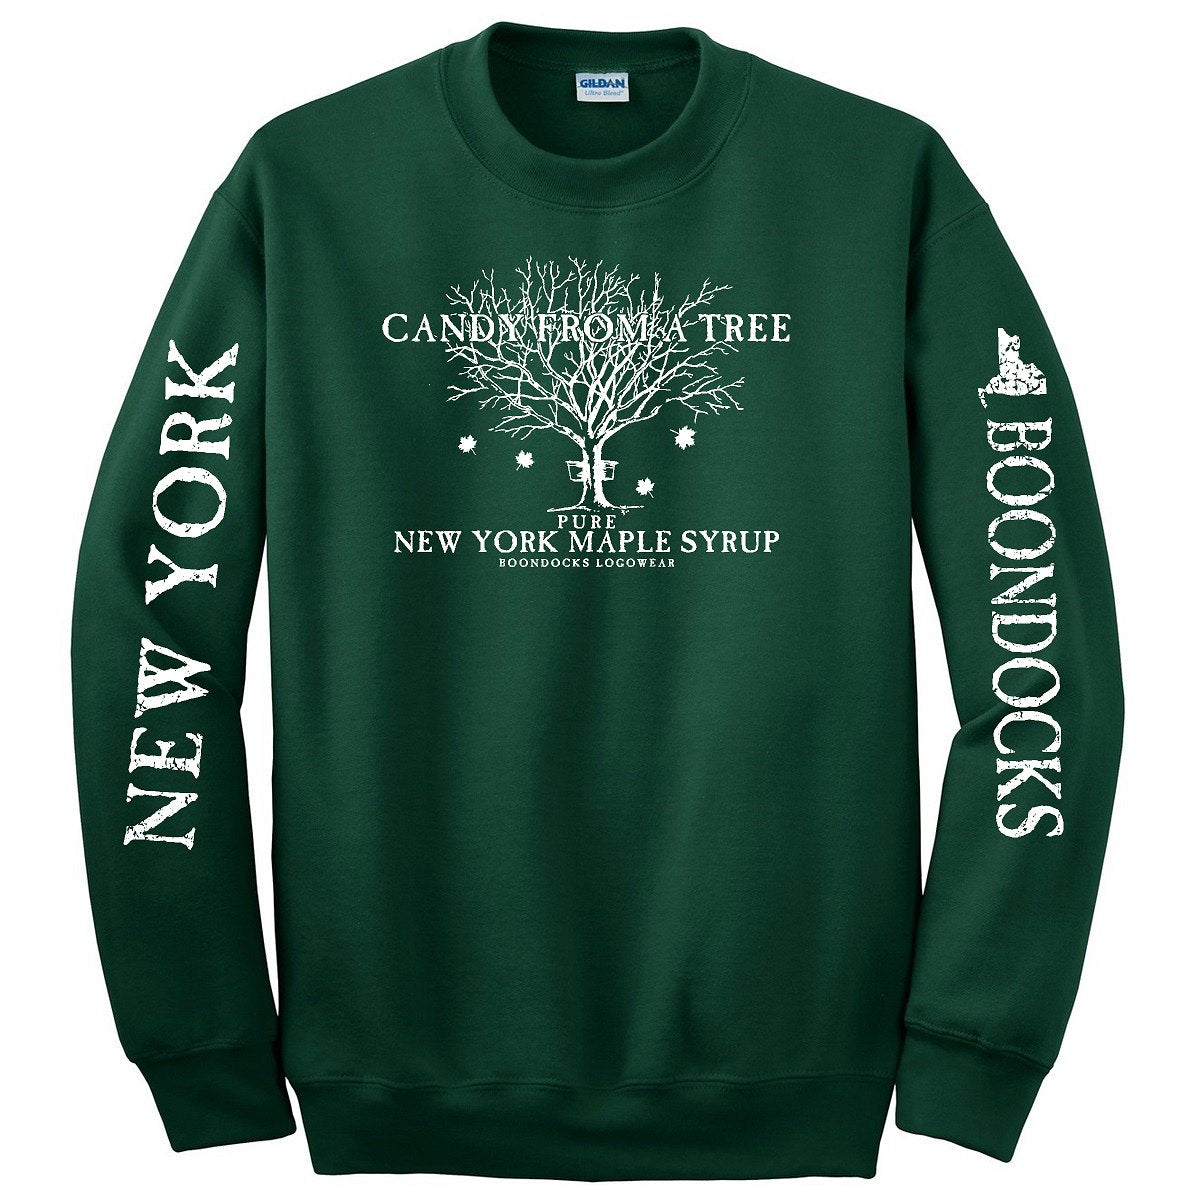 CANDY FROM A TREE NEW YORK Crew Neck Sweatshirt with Logo printed on the front and Distressed print Vermont & Boondocks on the sleeves.